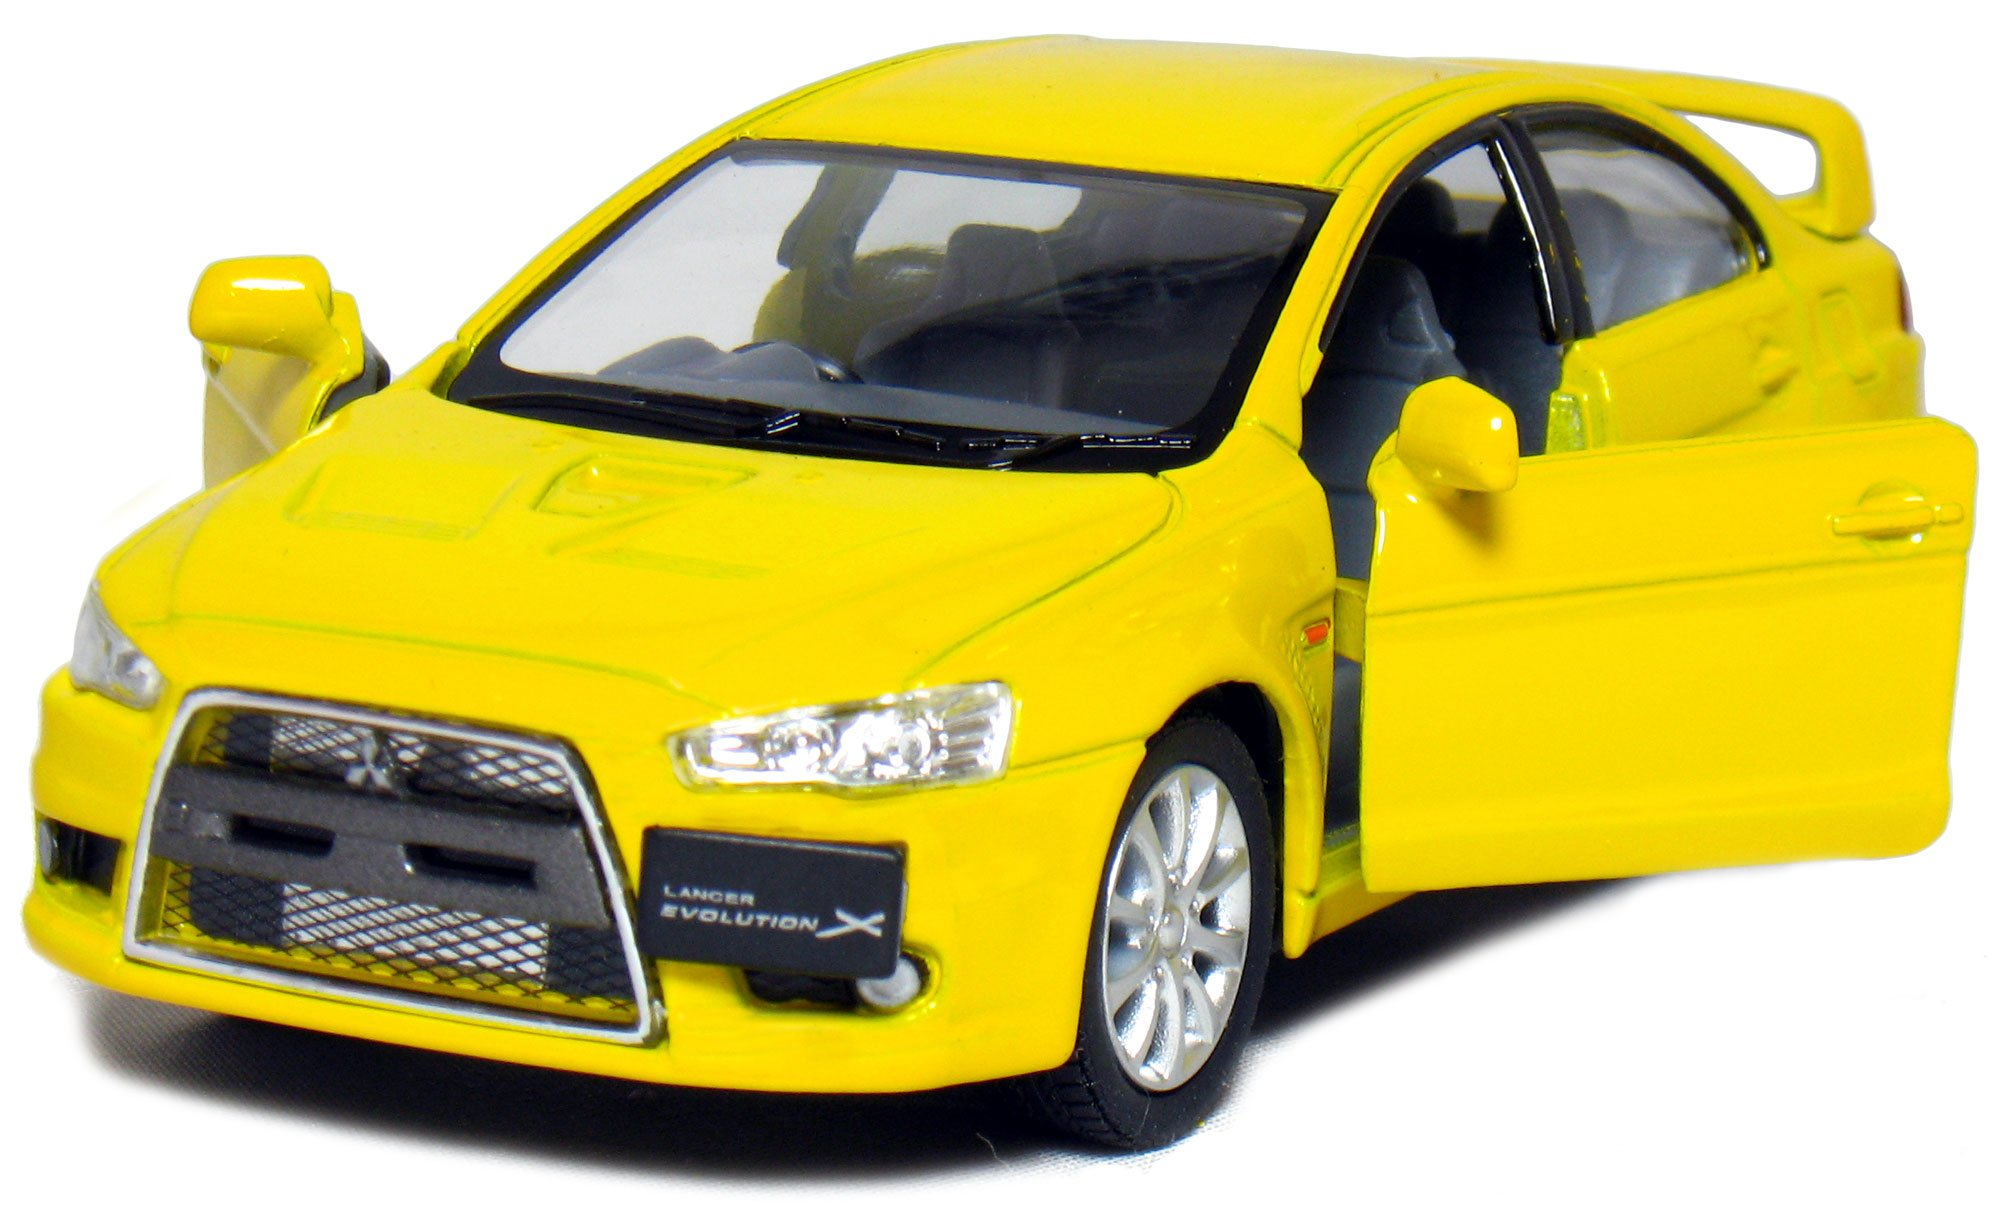 5 2008 Mitsubishi Lancer Evolution X 1:36 Scale (Yellow) by Kinsmart